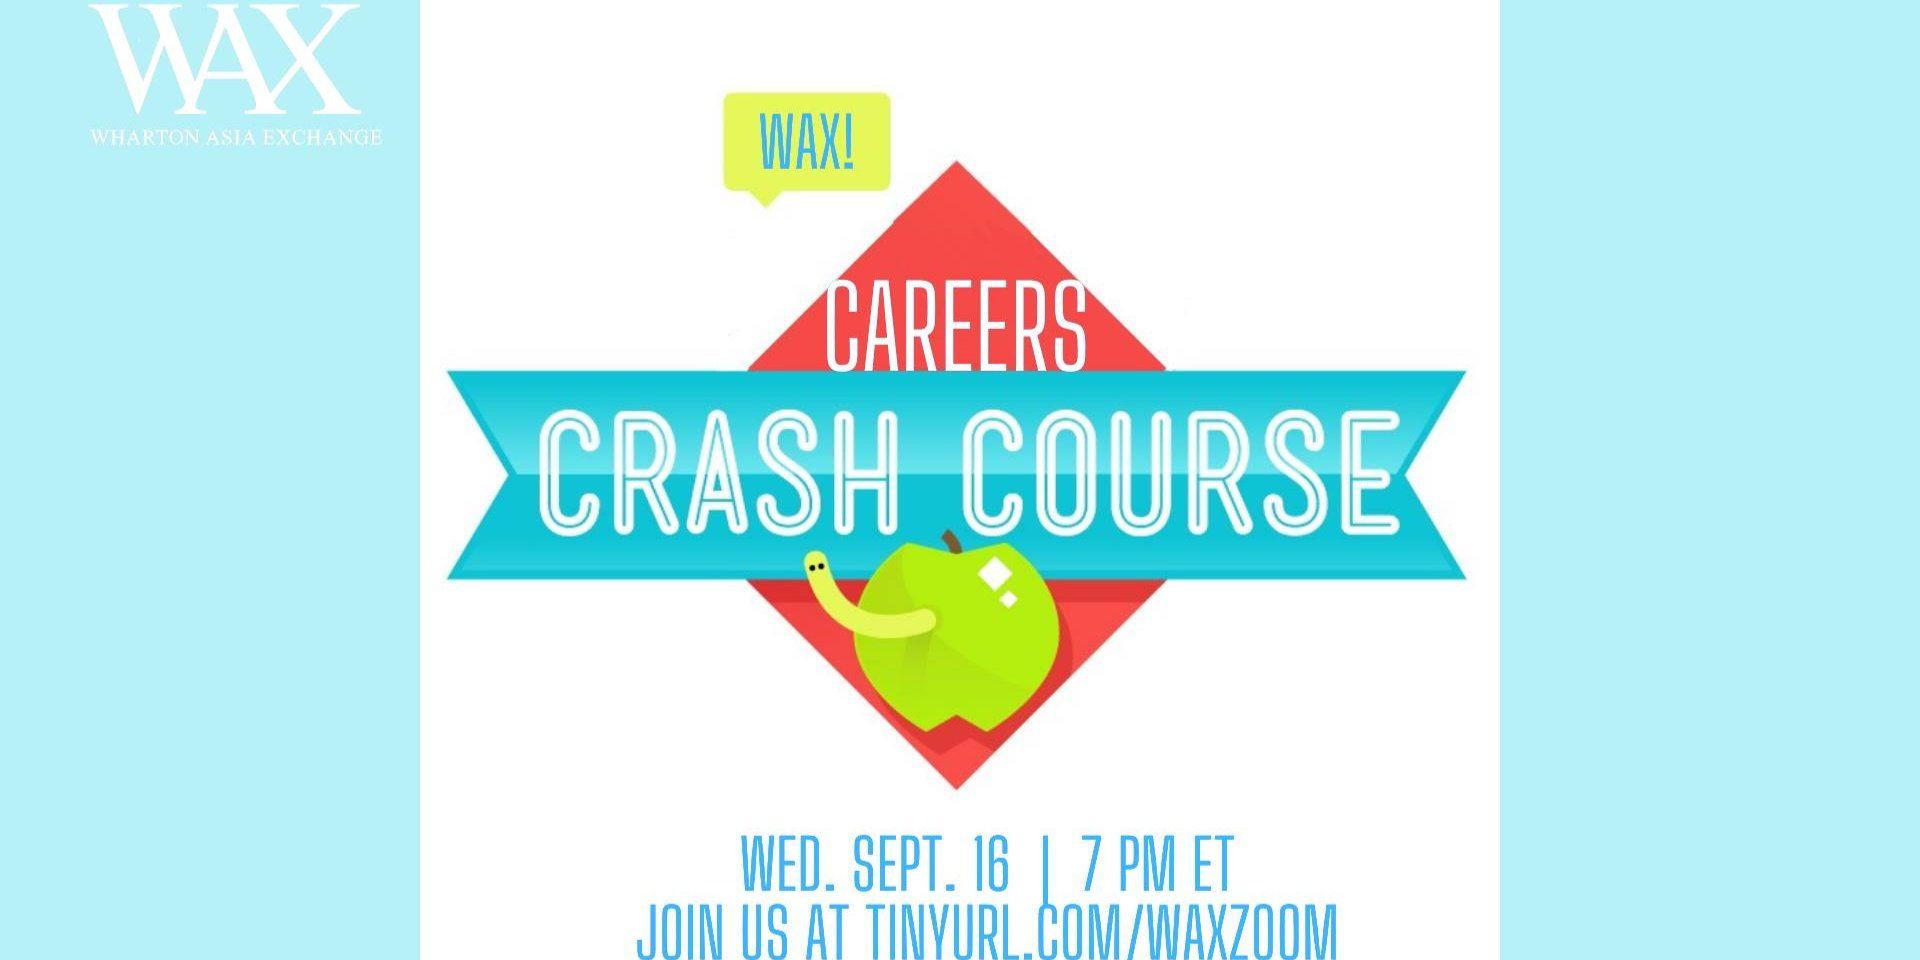 Careers Crash Course